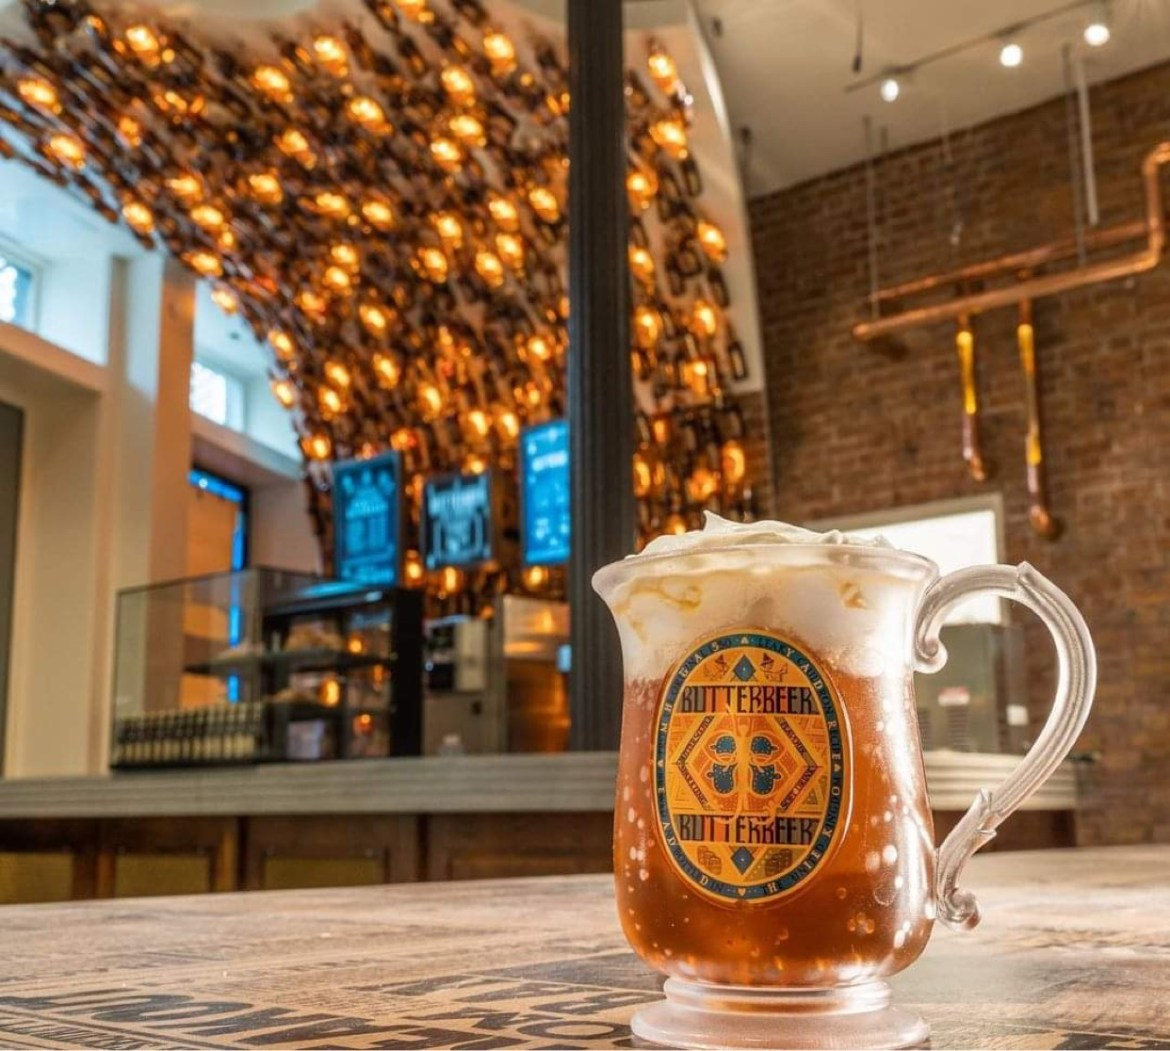 Harry Potter NY will be home to New York's only Butterbeer Bar